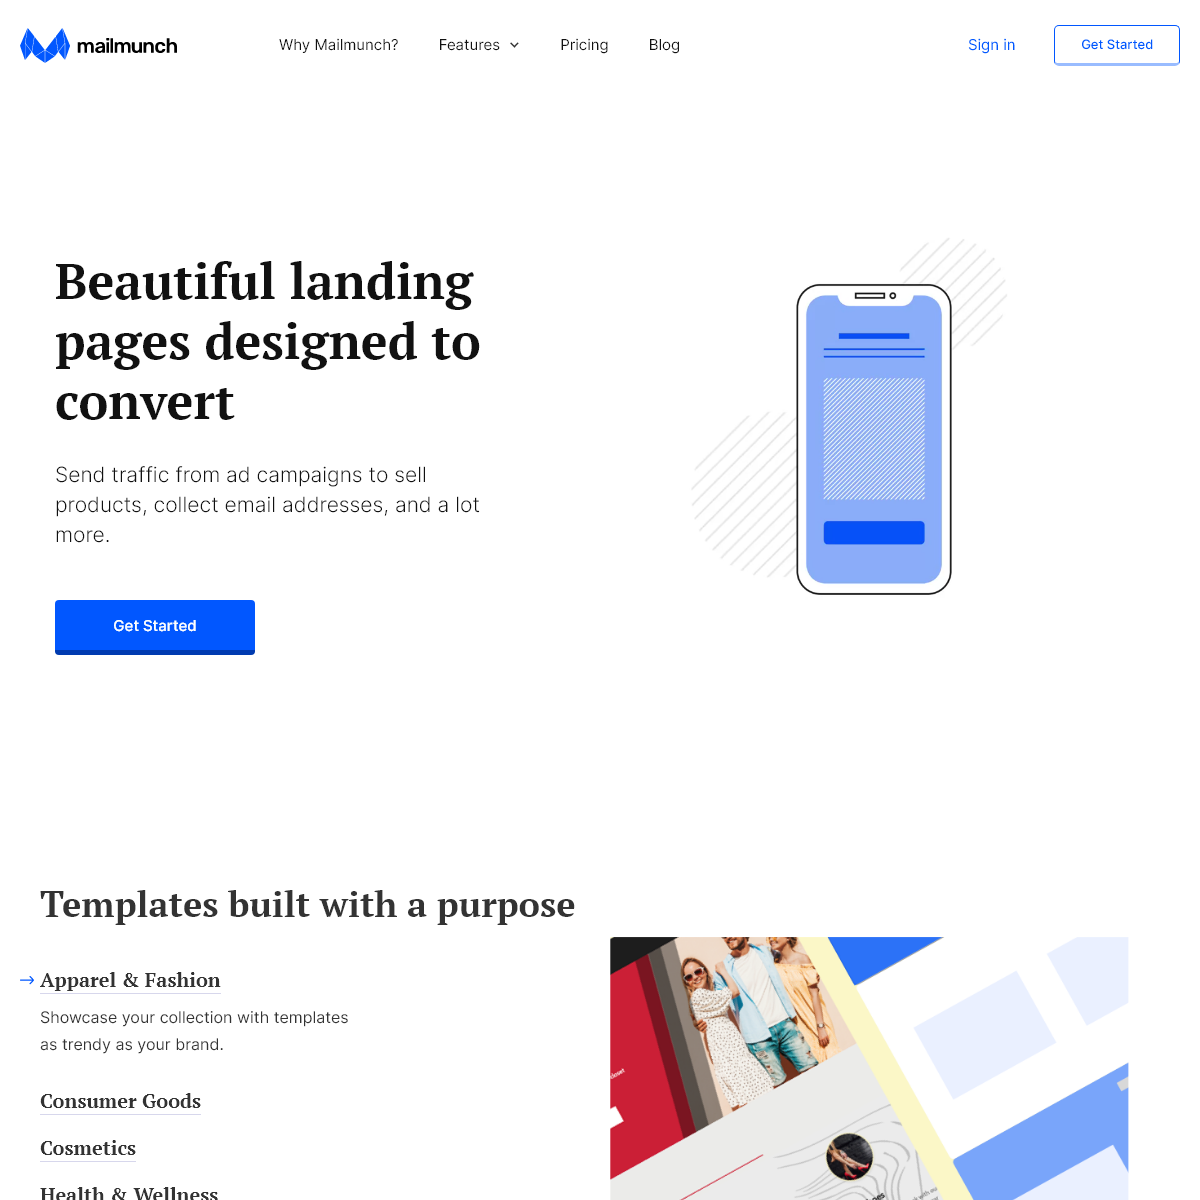 Free Landing Page Builder- Create Free Landing Pages with Mailmunch